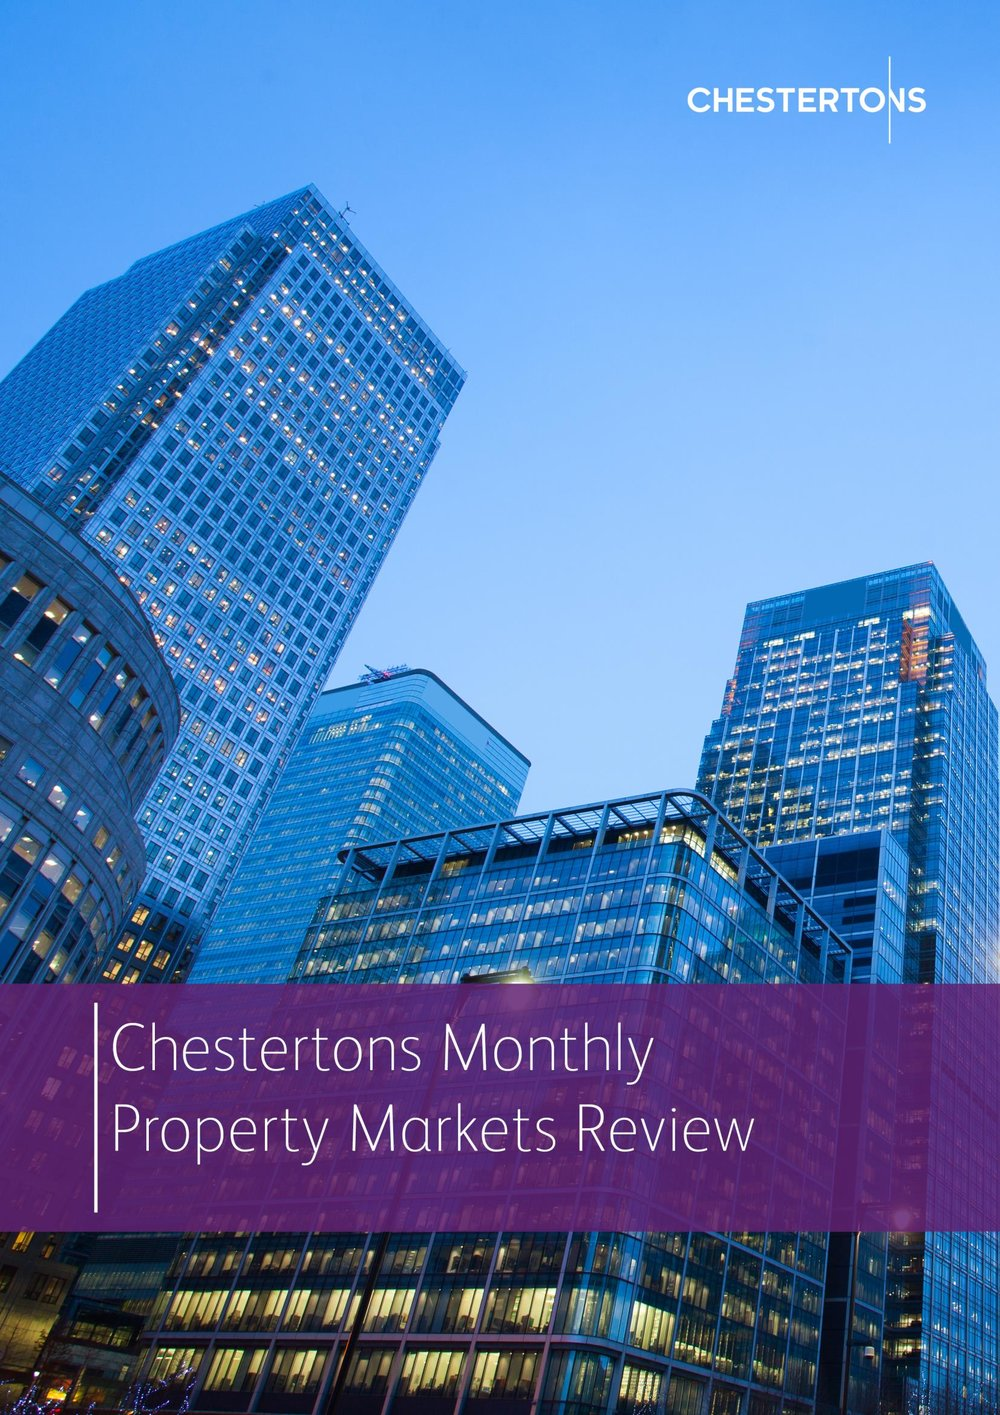 Chestertons resi commercial monthly review Apr 2018 (2).jpg